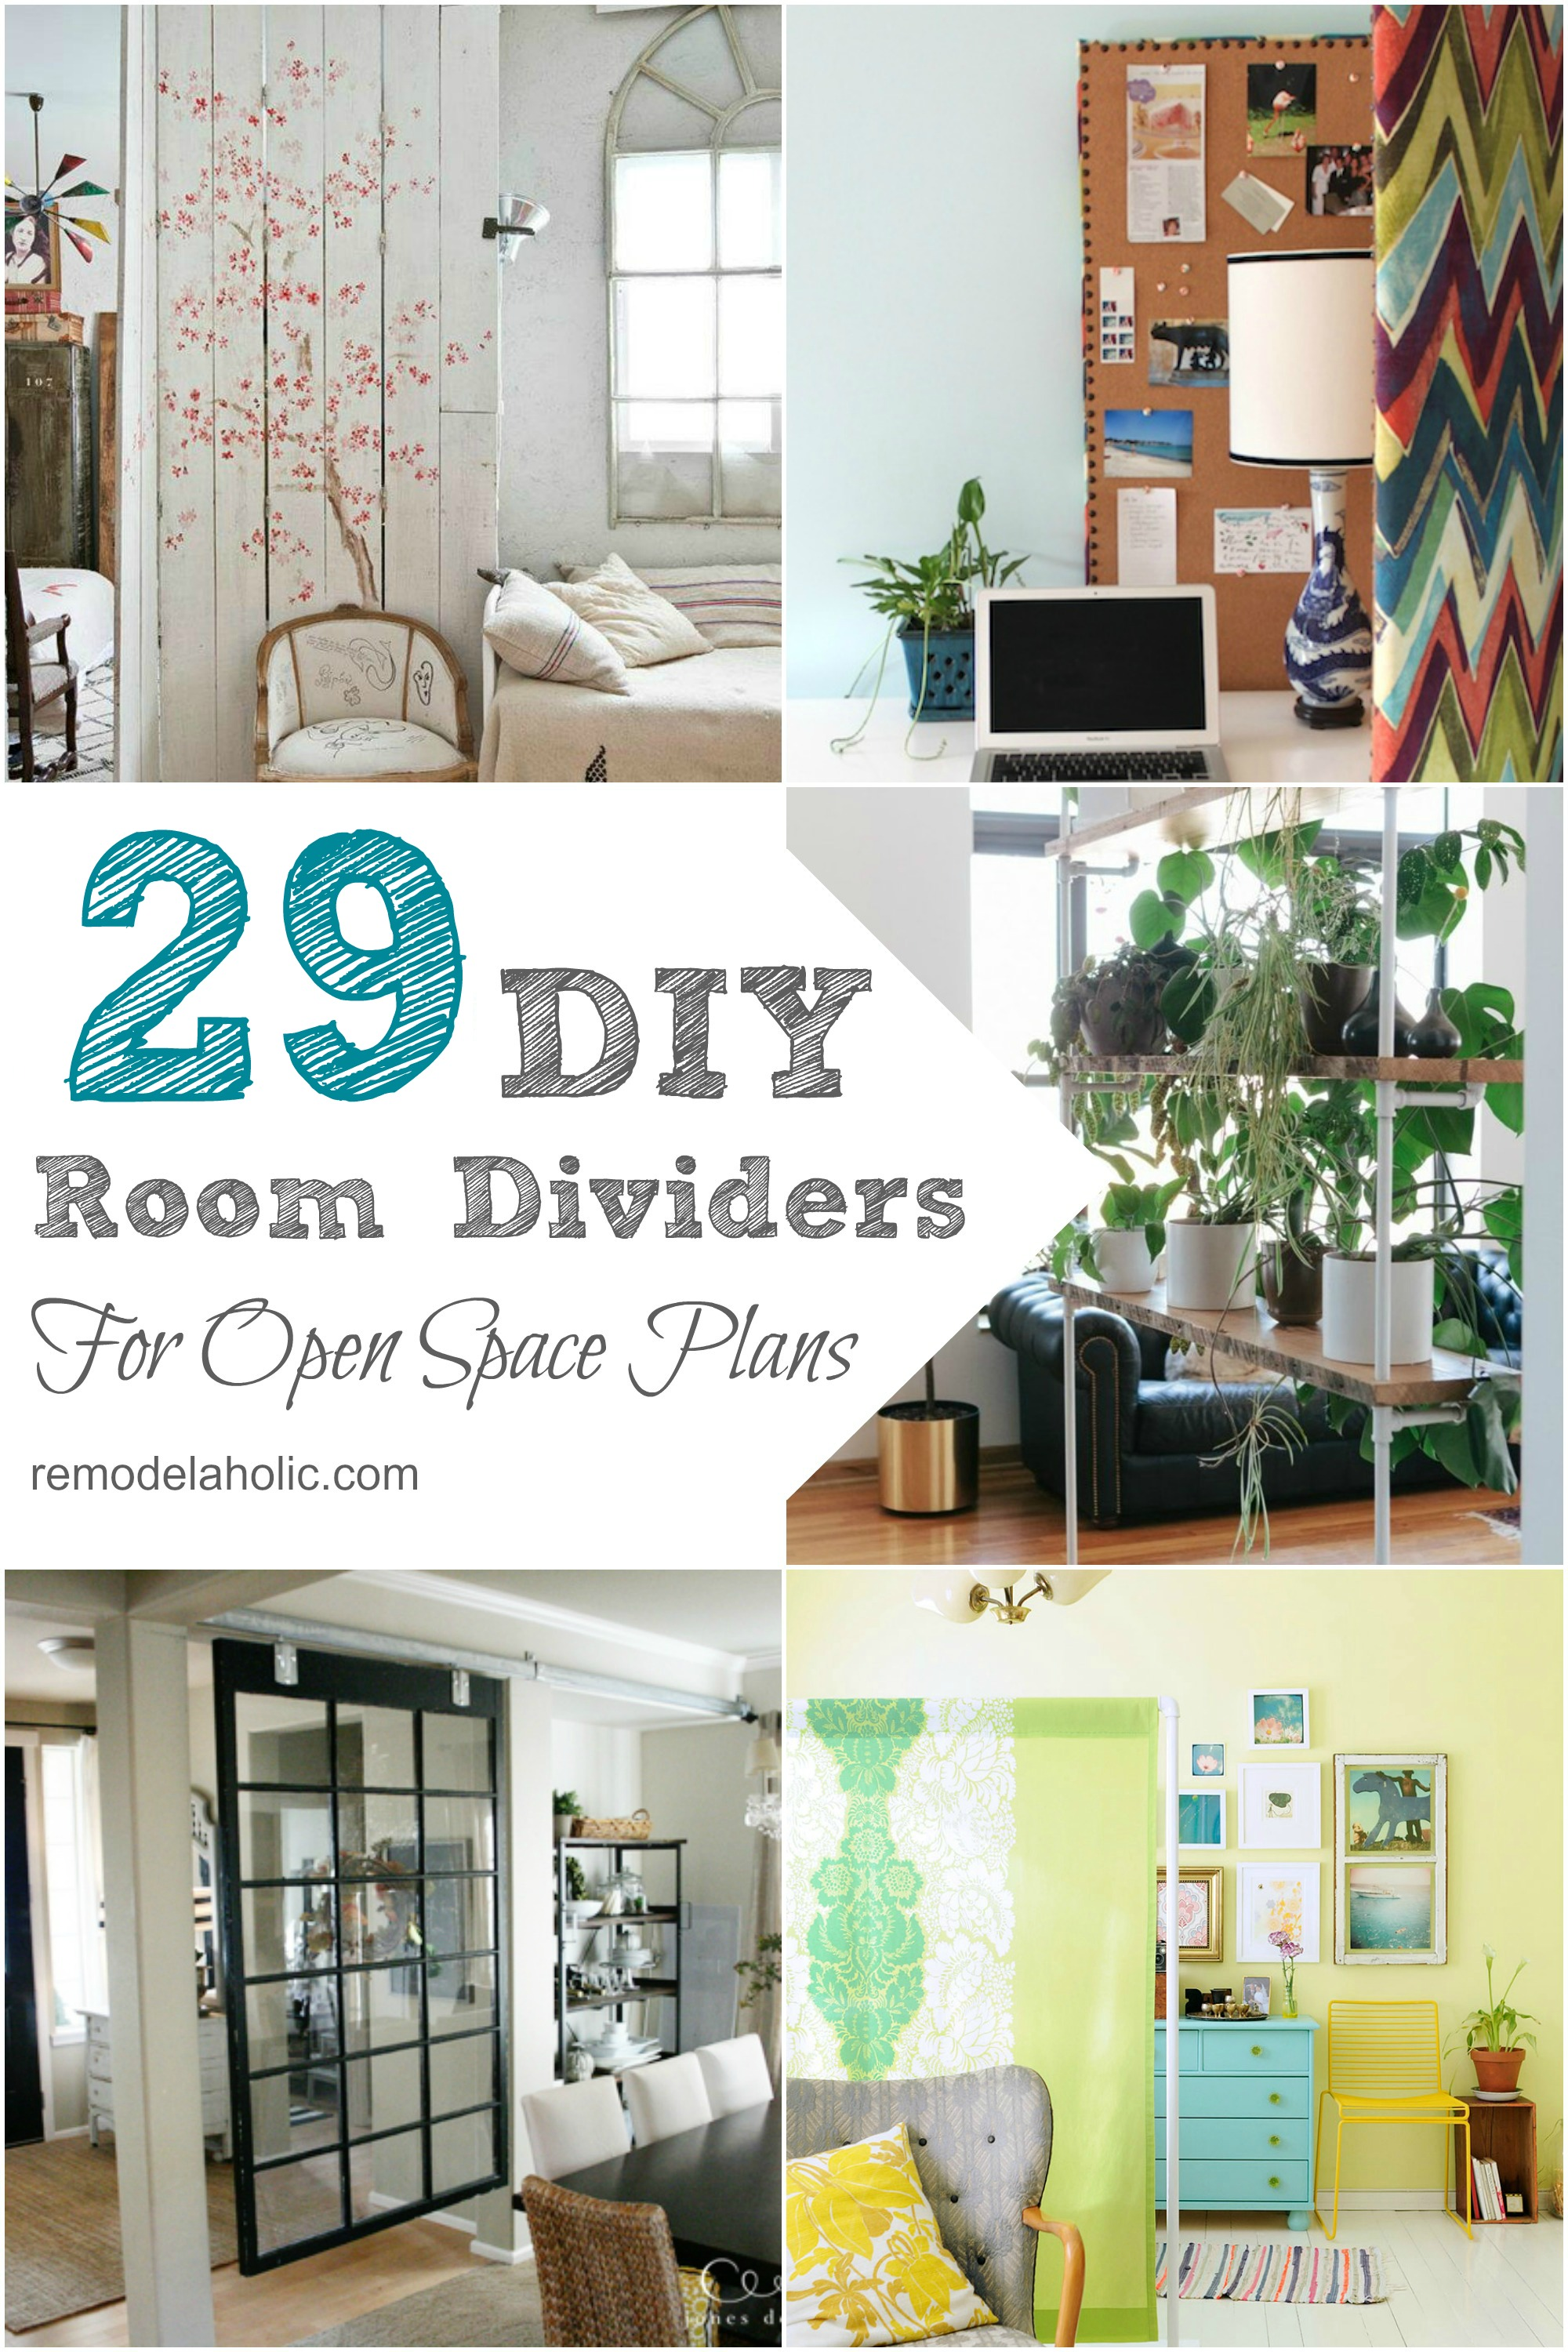 Remodelaholic 29 Creative DIY Room Dividers For Open Space Plans